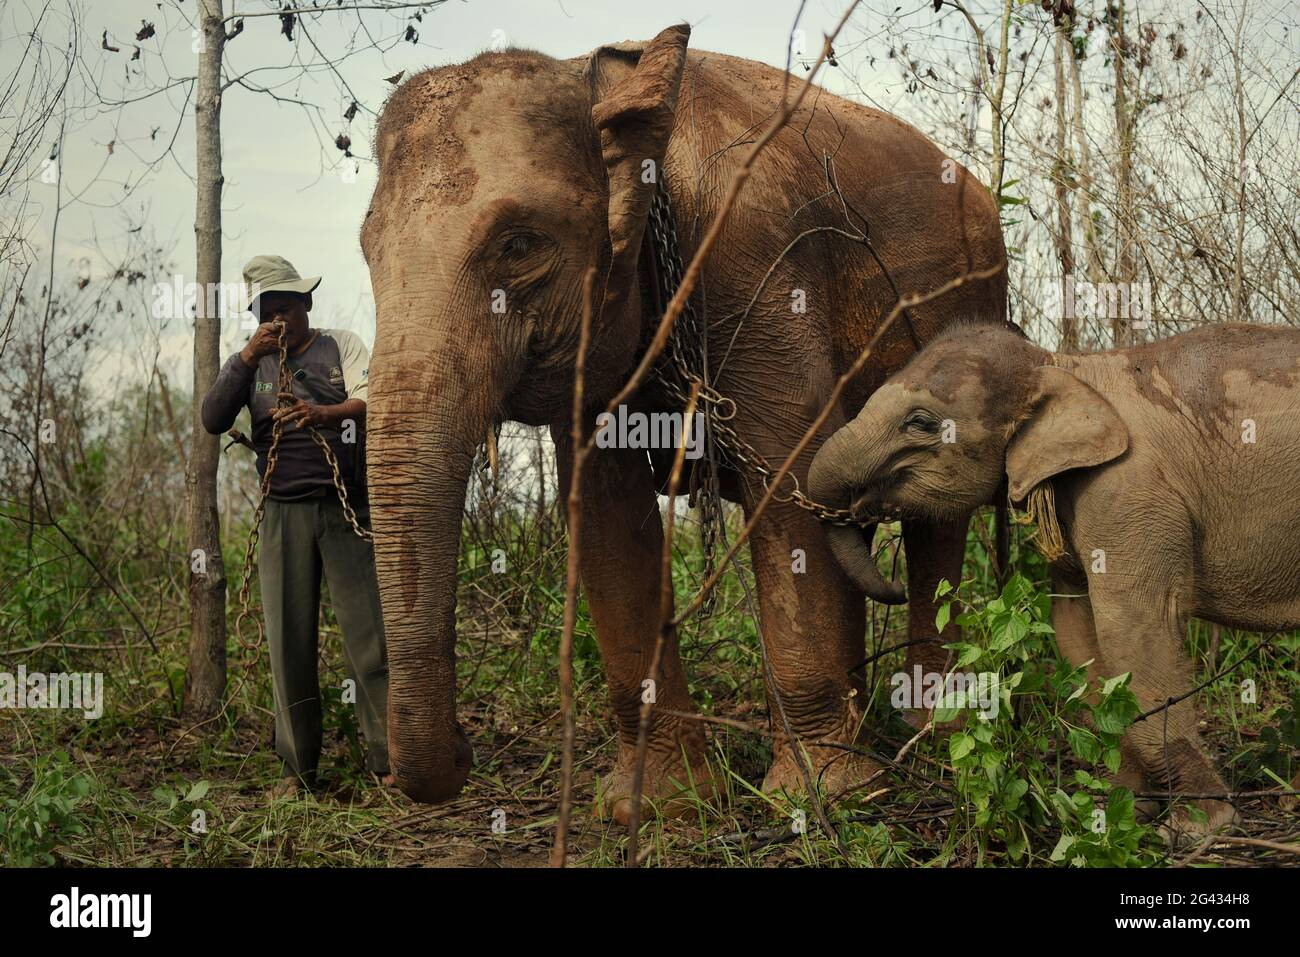 Rebo, a mahout, preparing his elephants for a walk back to the elephant center after they feed on the bushes in Way Kambas National Park, Indonesia. Stock Photo